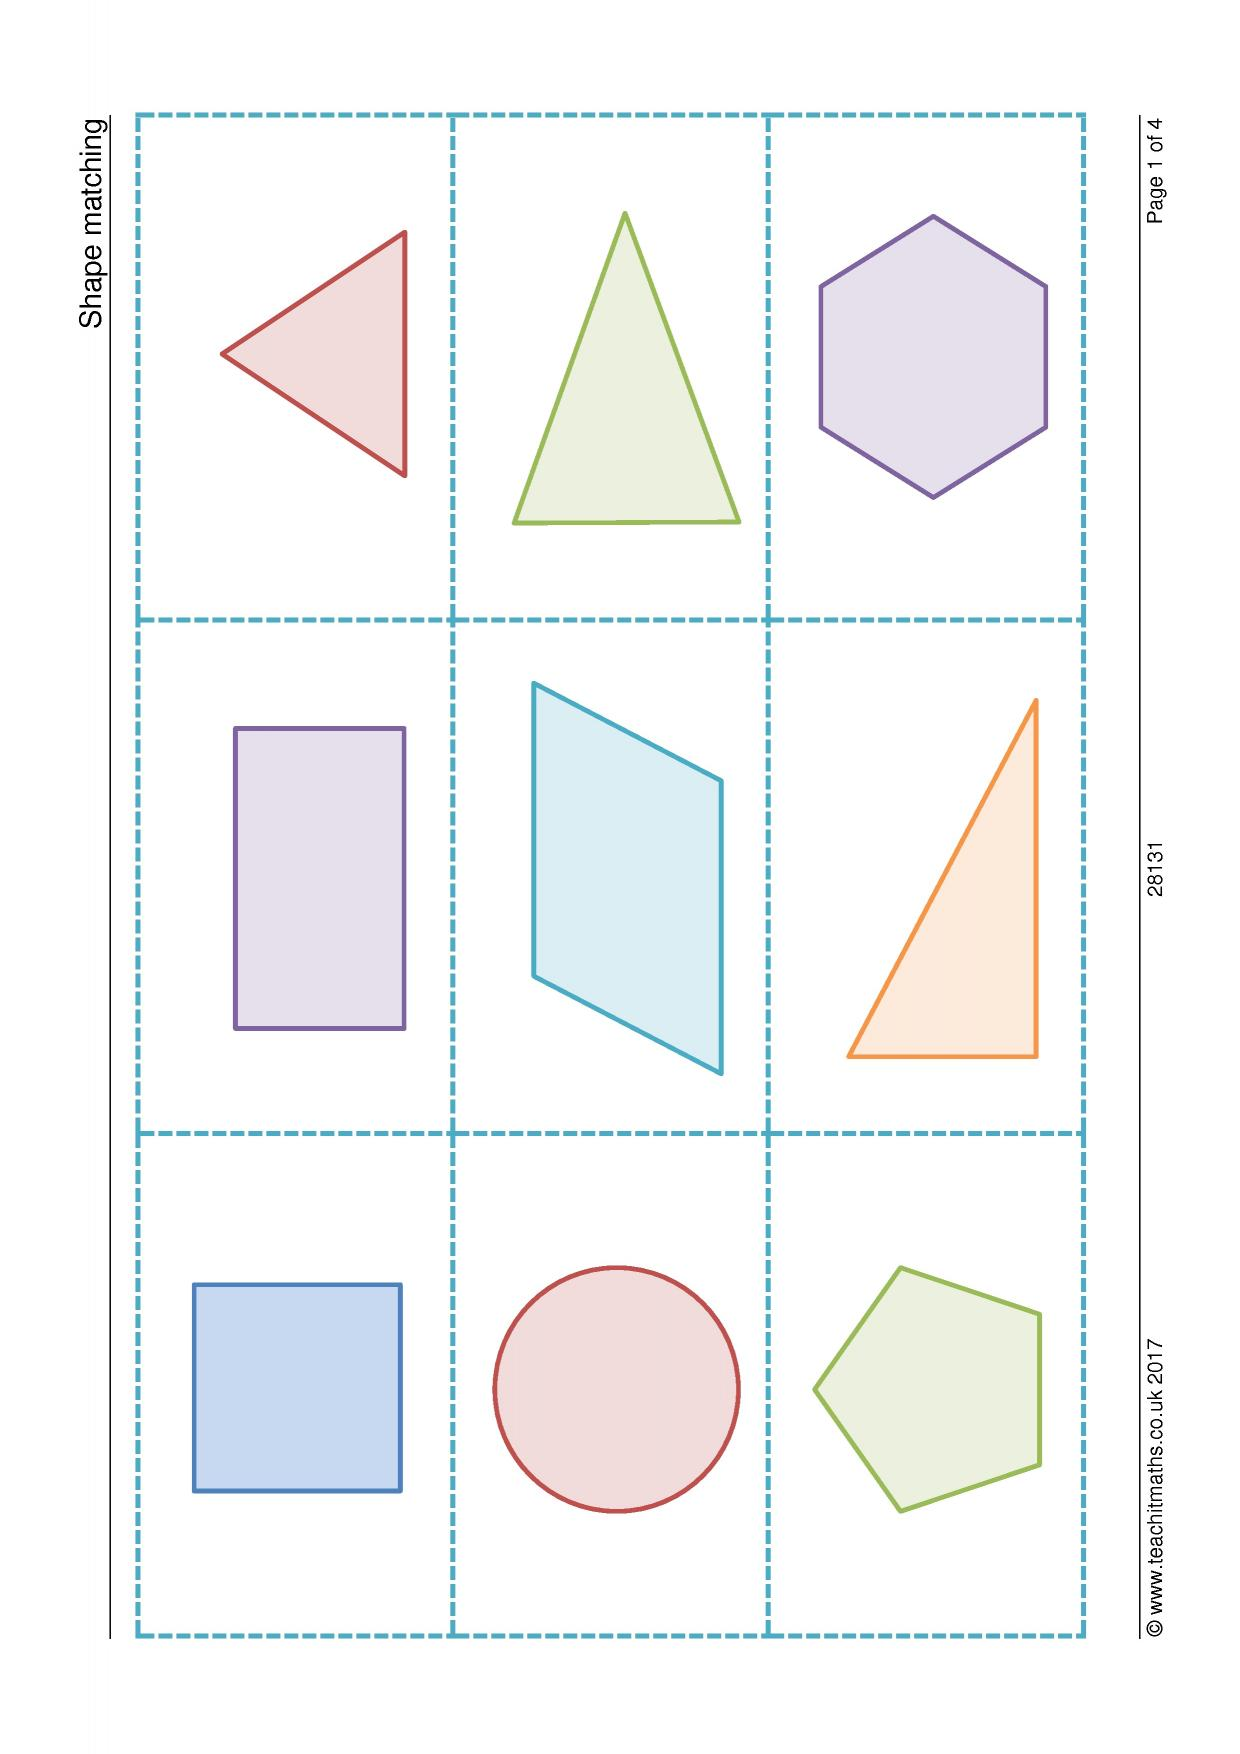 2d Geometric Shapes Chart Worksheet Identifying Quadrilaterals Worksheet Fun